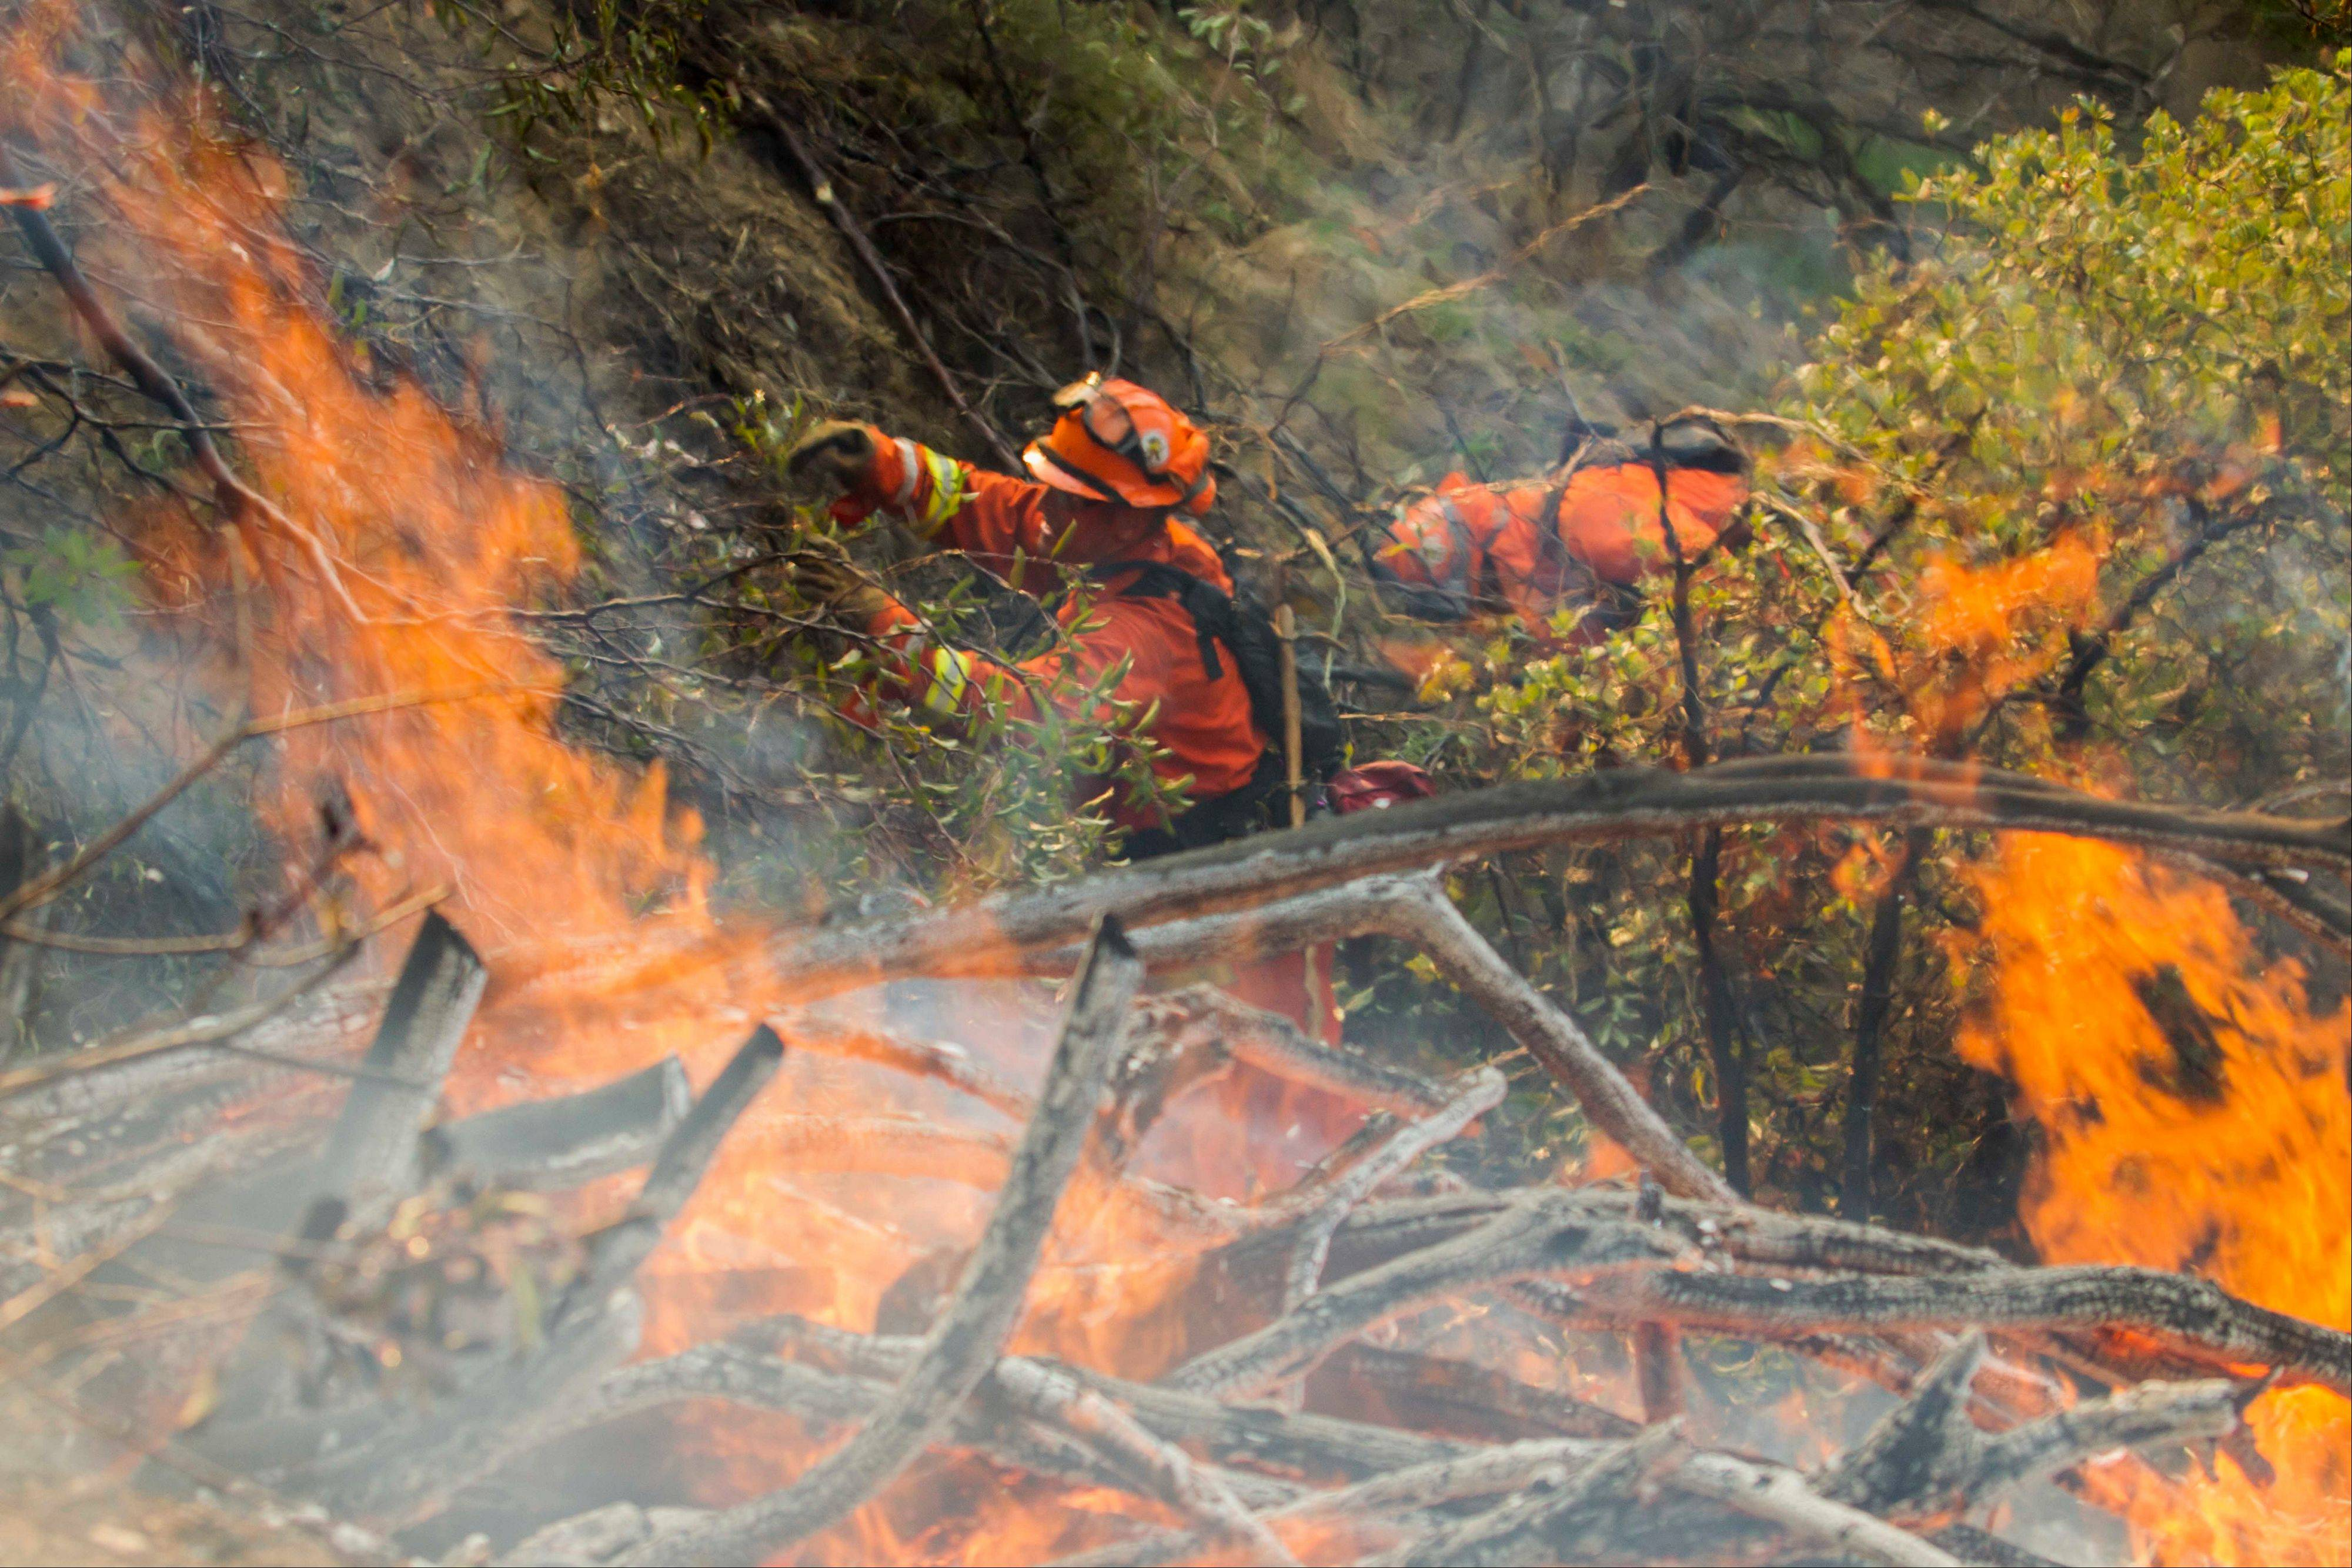 A fire crew works on a fire line as a wildfire burns just north of the San Gabriel Valley community of Glendora, Calif., Thursday. Southern California authorities have ordered the evacuation of homes at the edge of a fast-moving wildfire burning in the dangerously dry foothills of the San Gabriel Mountains.